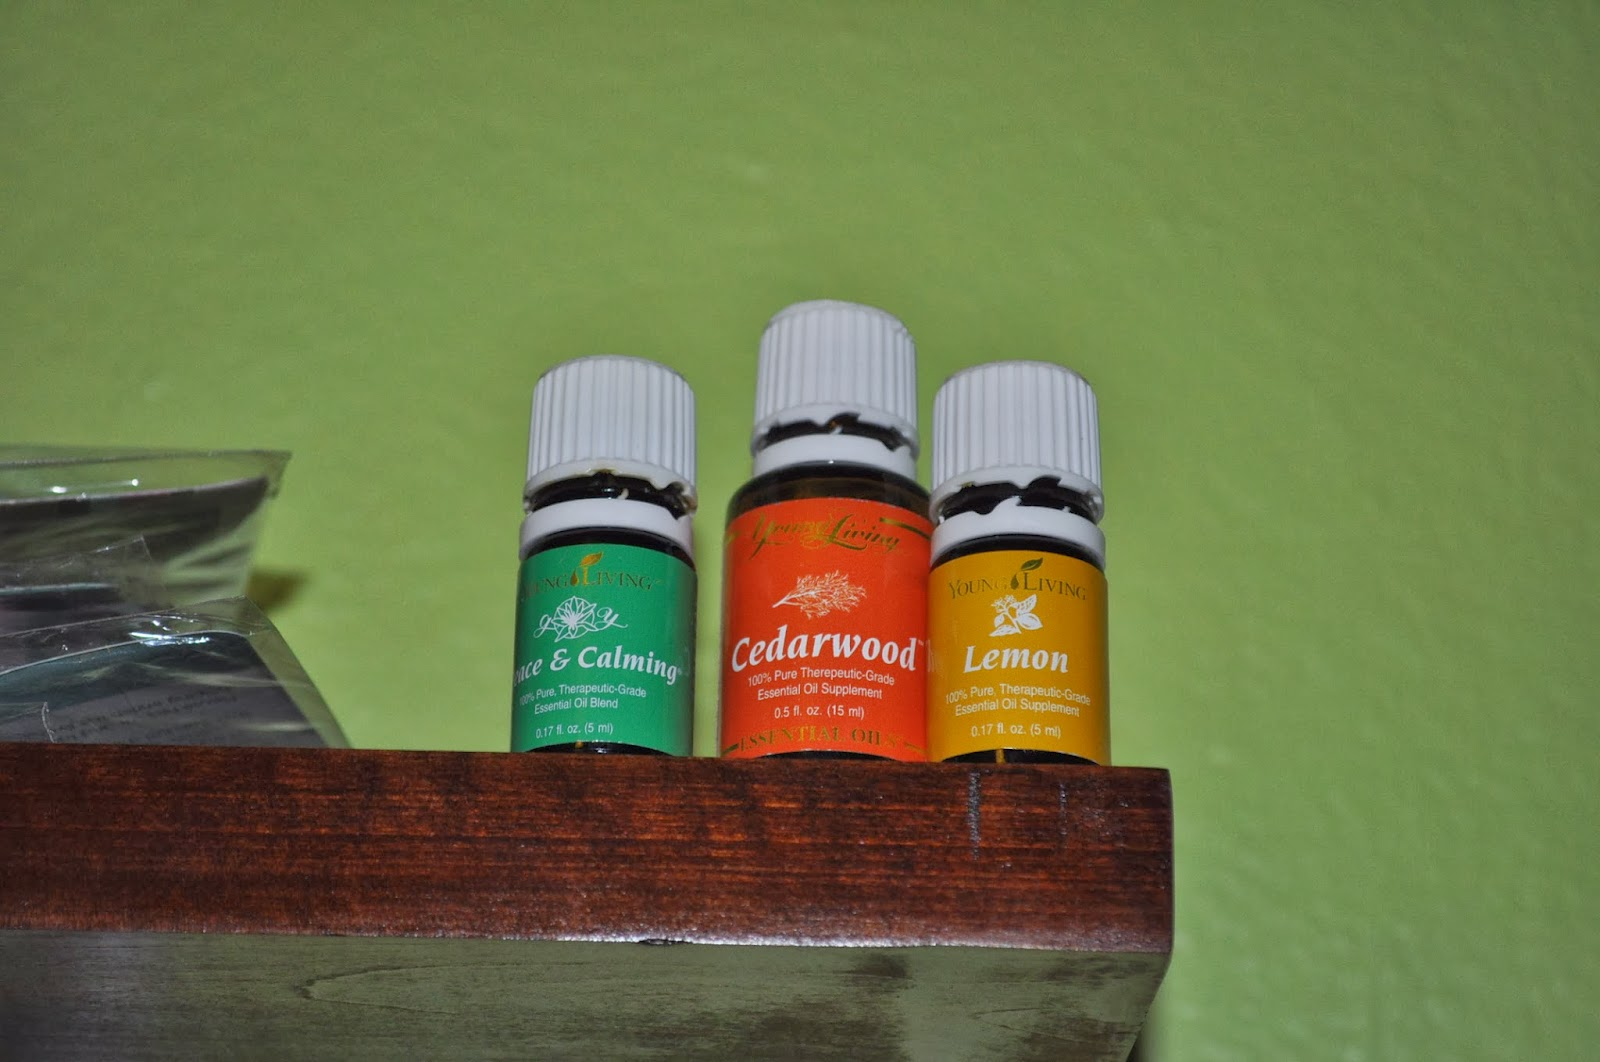 stunning Hobby Lobby Essential Oils Review Part - 17: Peace u0026 Calming has greatly reduced Lukeyu0027s teeth grinding, cedarwood is  good for the brain, and I used lemon last week when he was feverish at  bedtime.